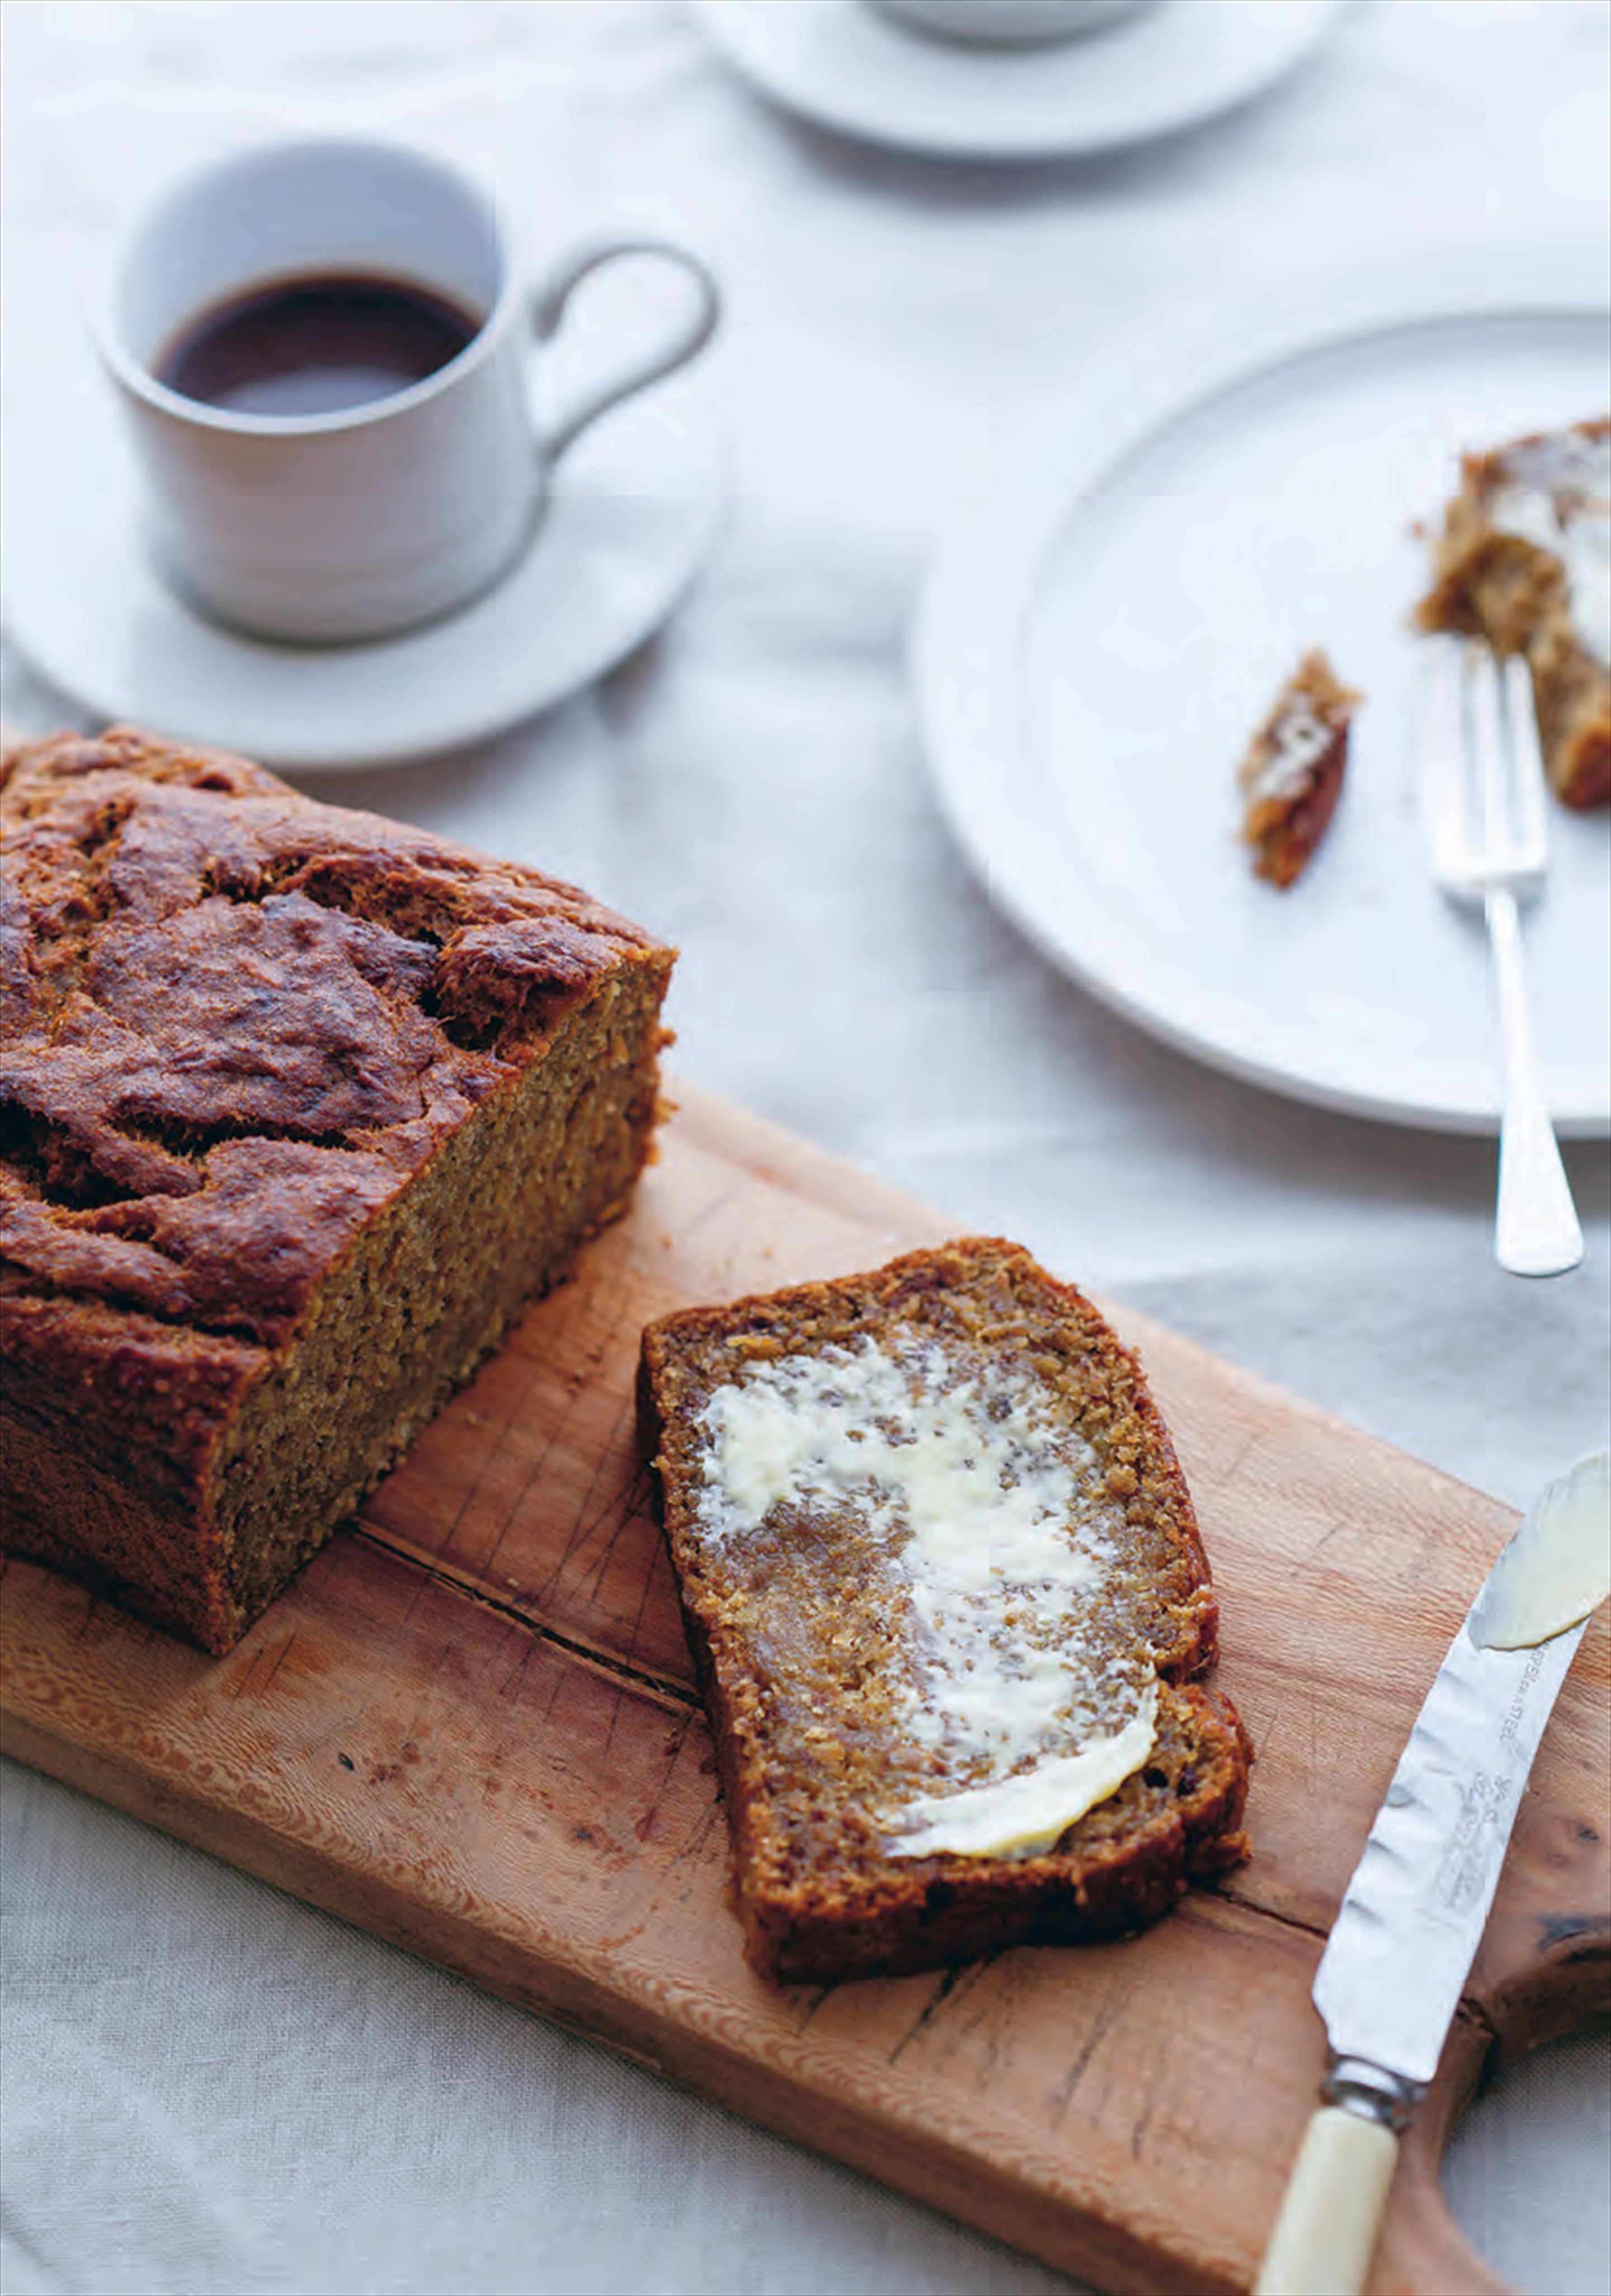 Malted banana and rye bread